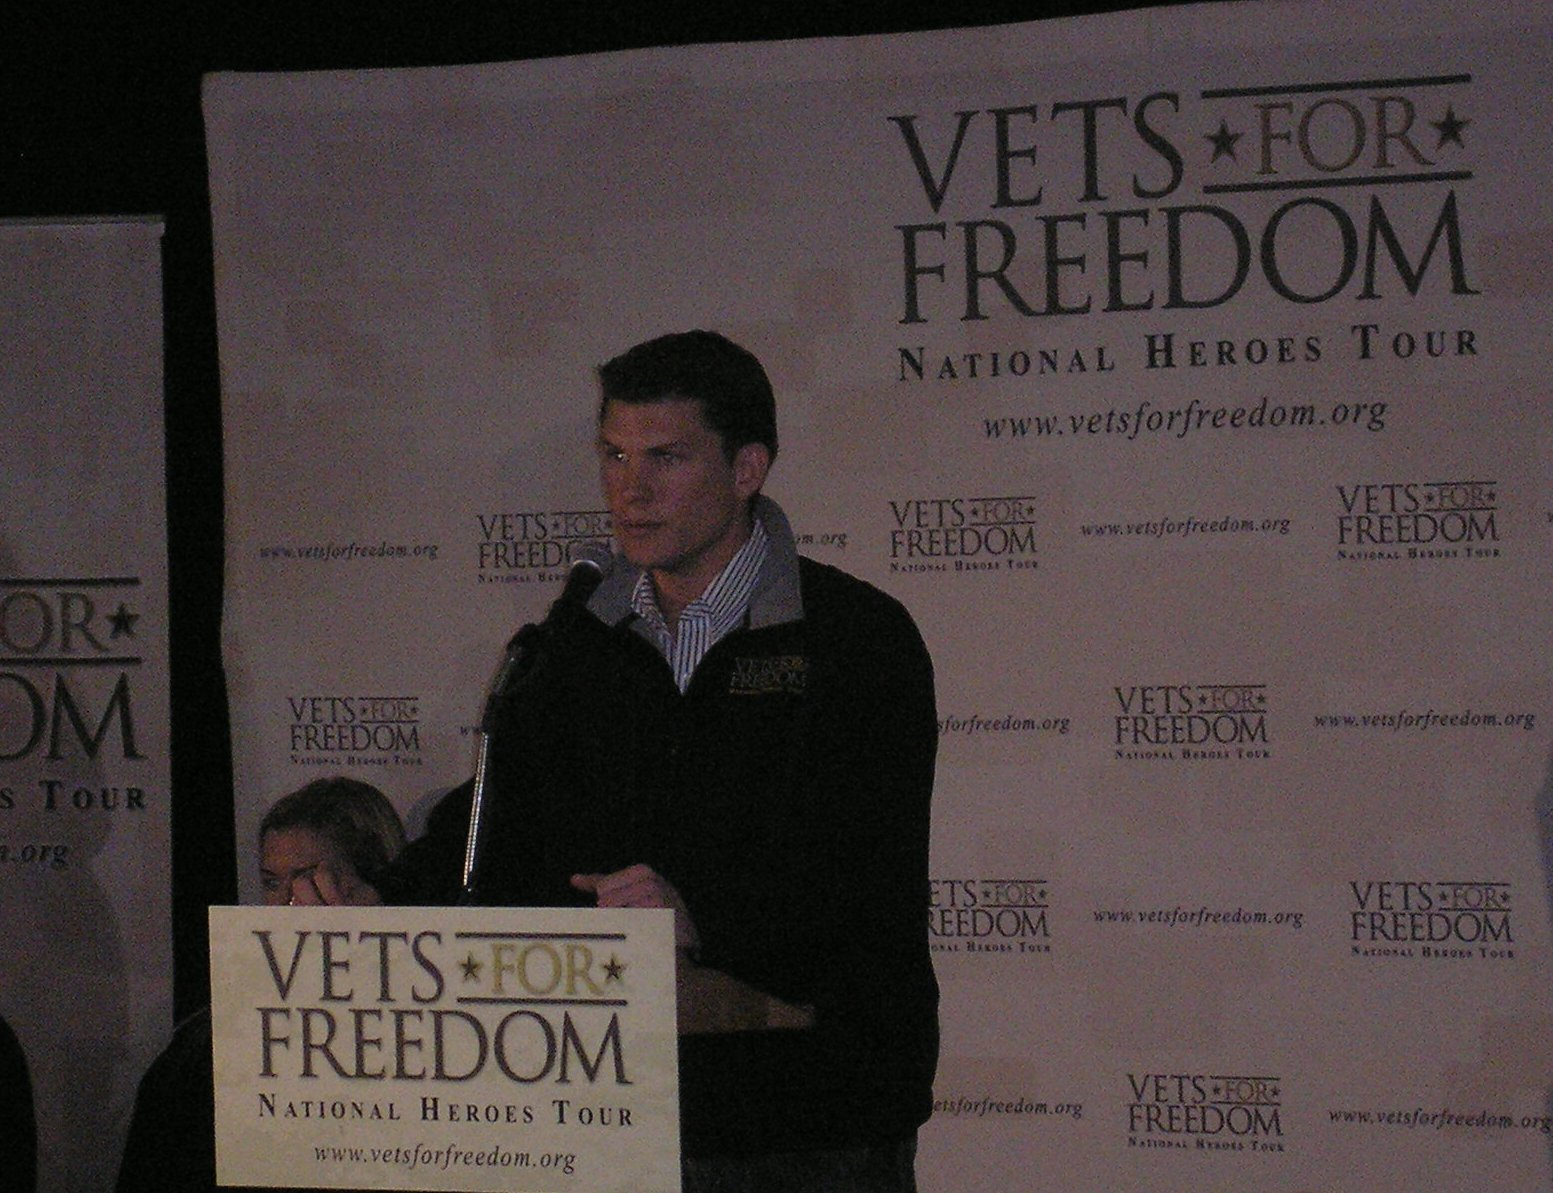 Capt. Pete Hegseth